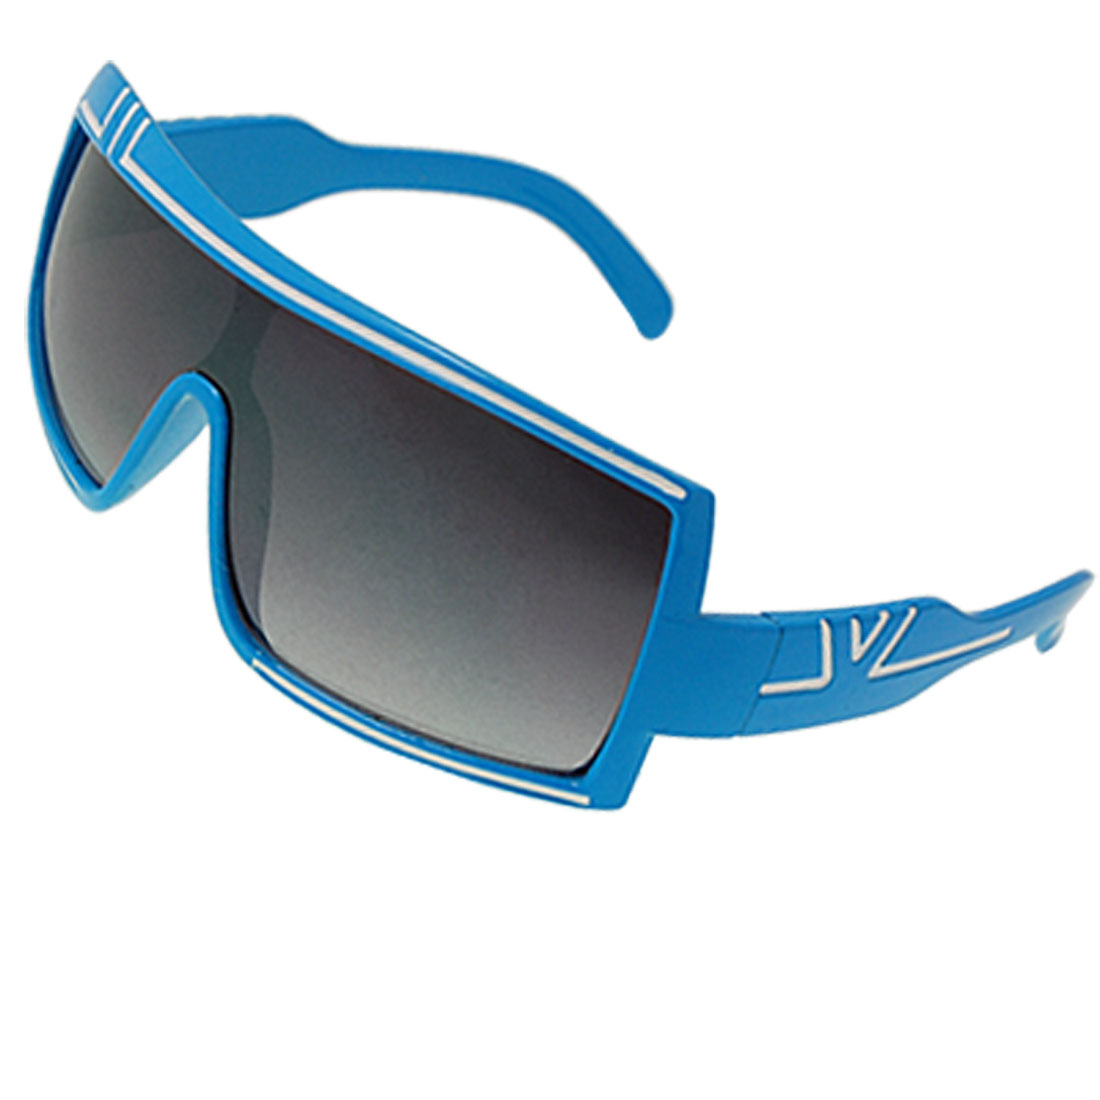 Wide Lens Plastic Blue Full Frame Eyewear Sunglasses for Children